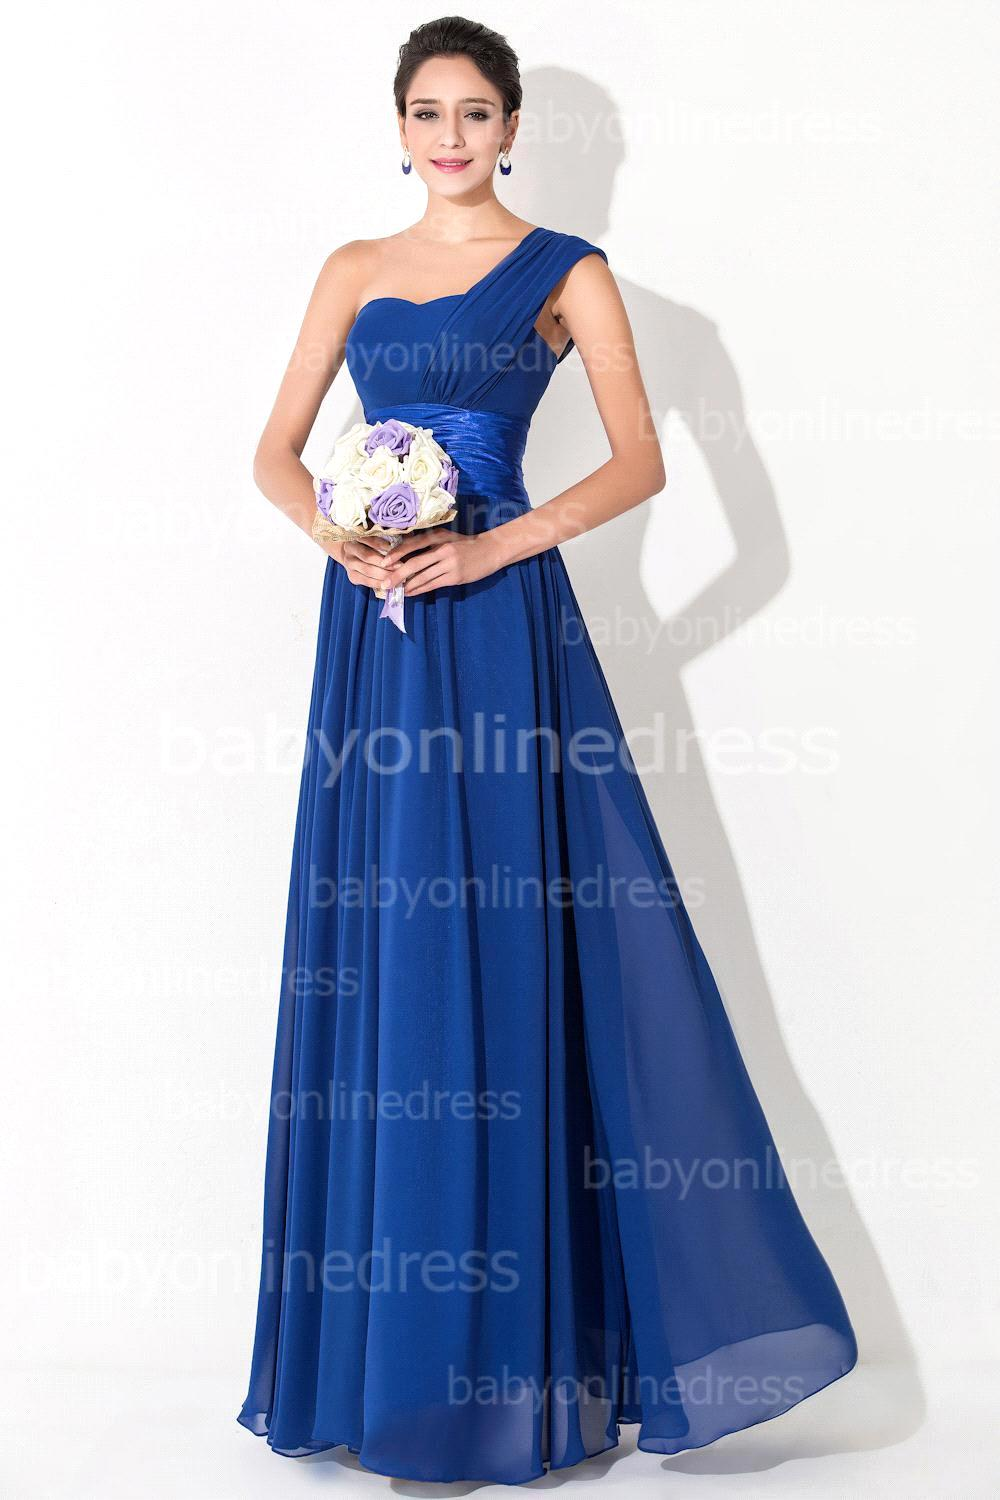 Periwinkle Bridesmaid Dresses